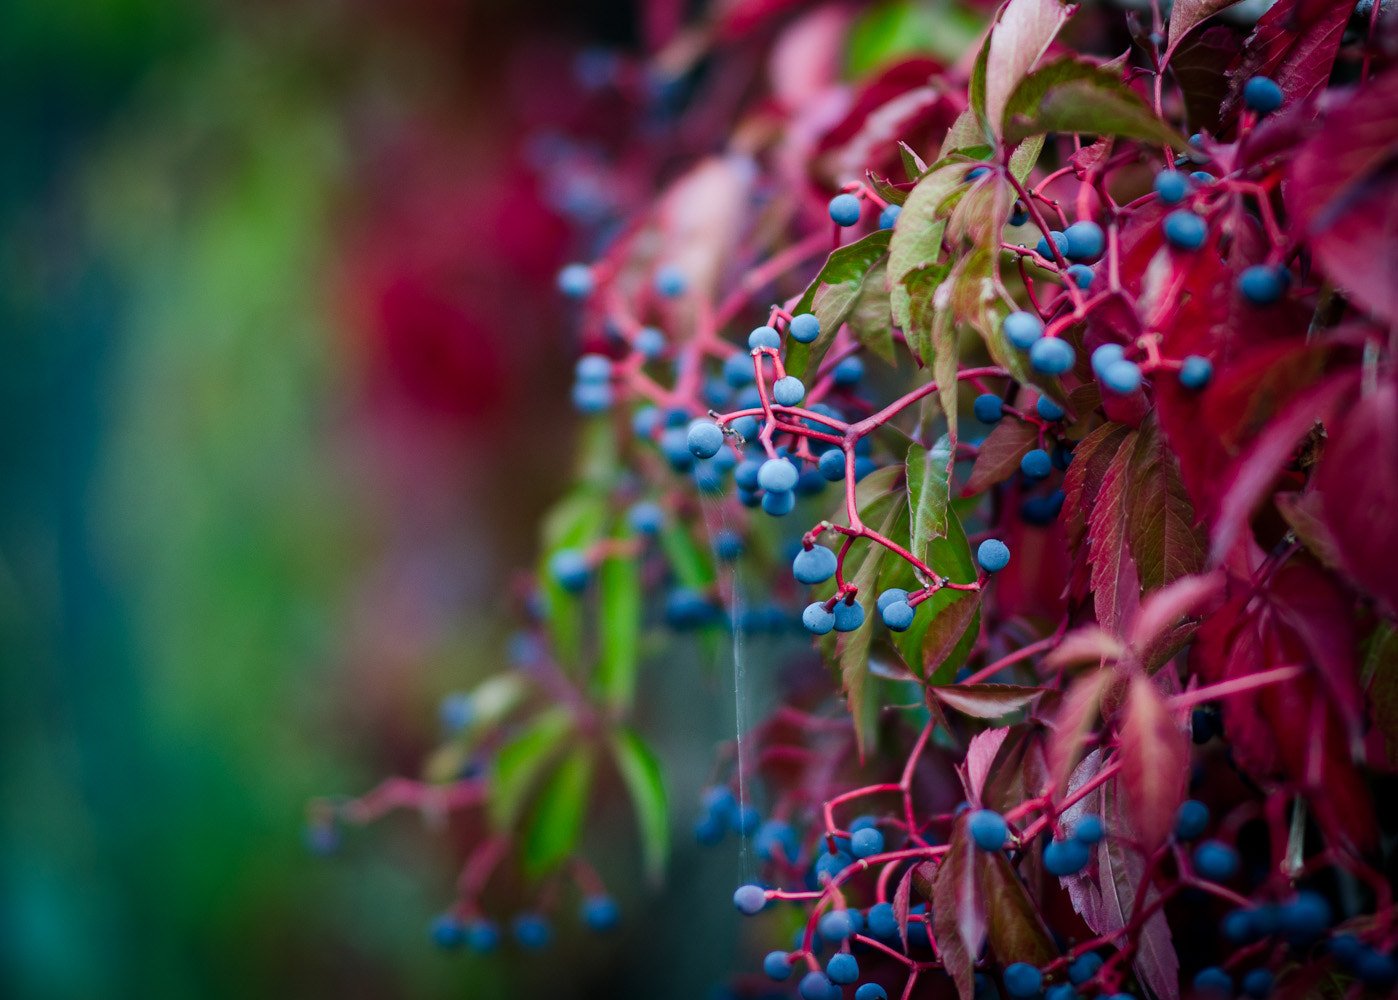 Photograph My Blueberry Nights by Anne Rosenberger on 500px